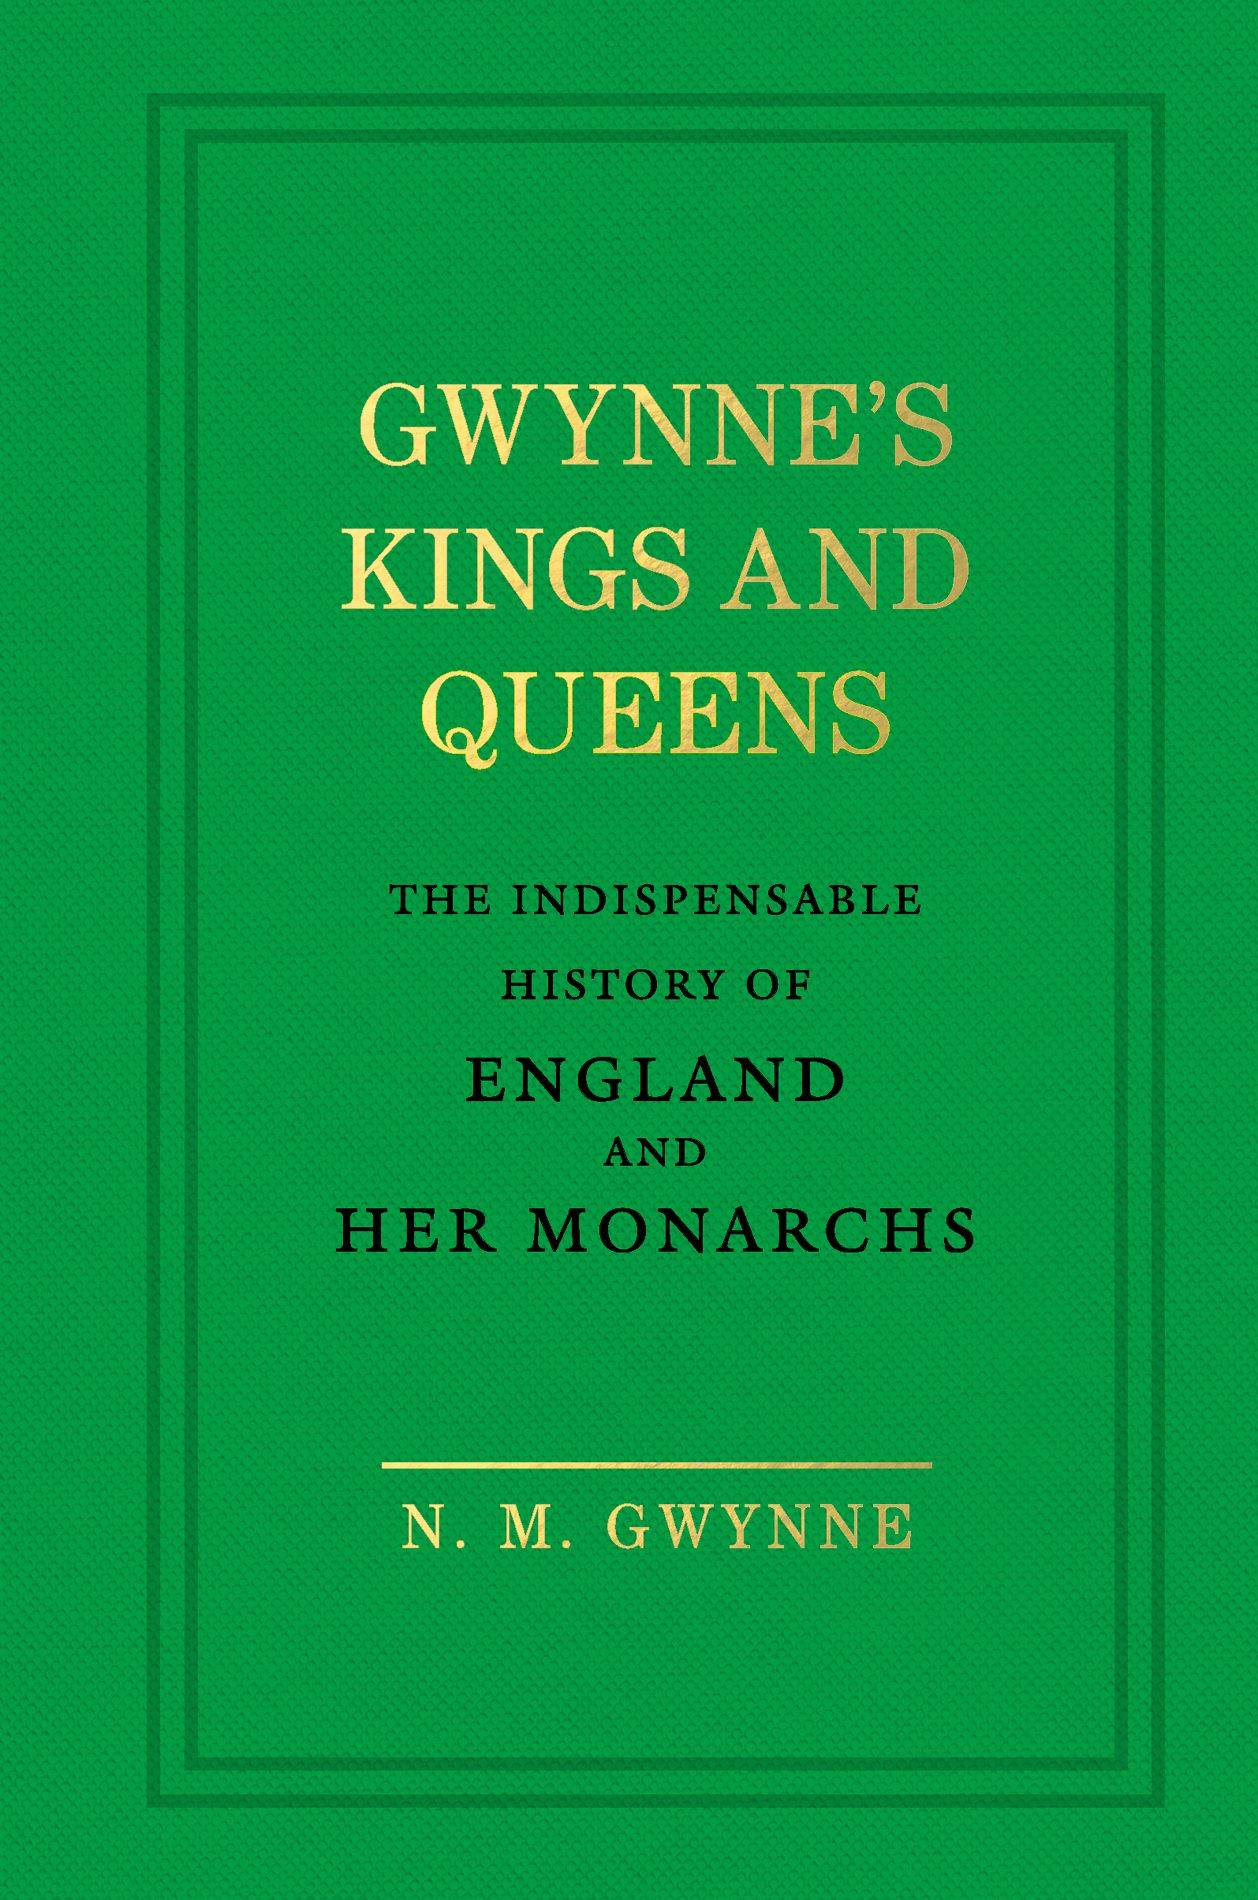 Gwynne's Kings and Queens: The Indispensable History of England and Her Monarchs